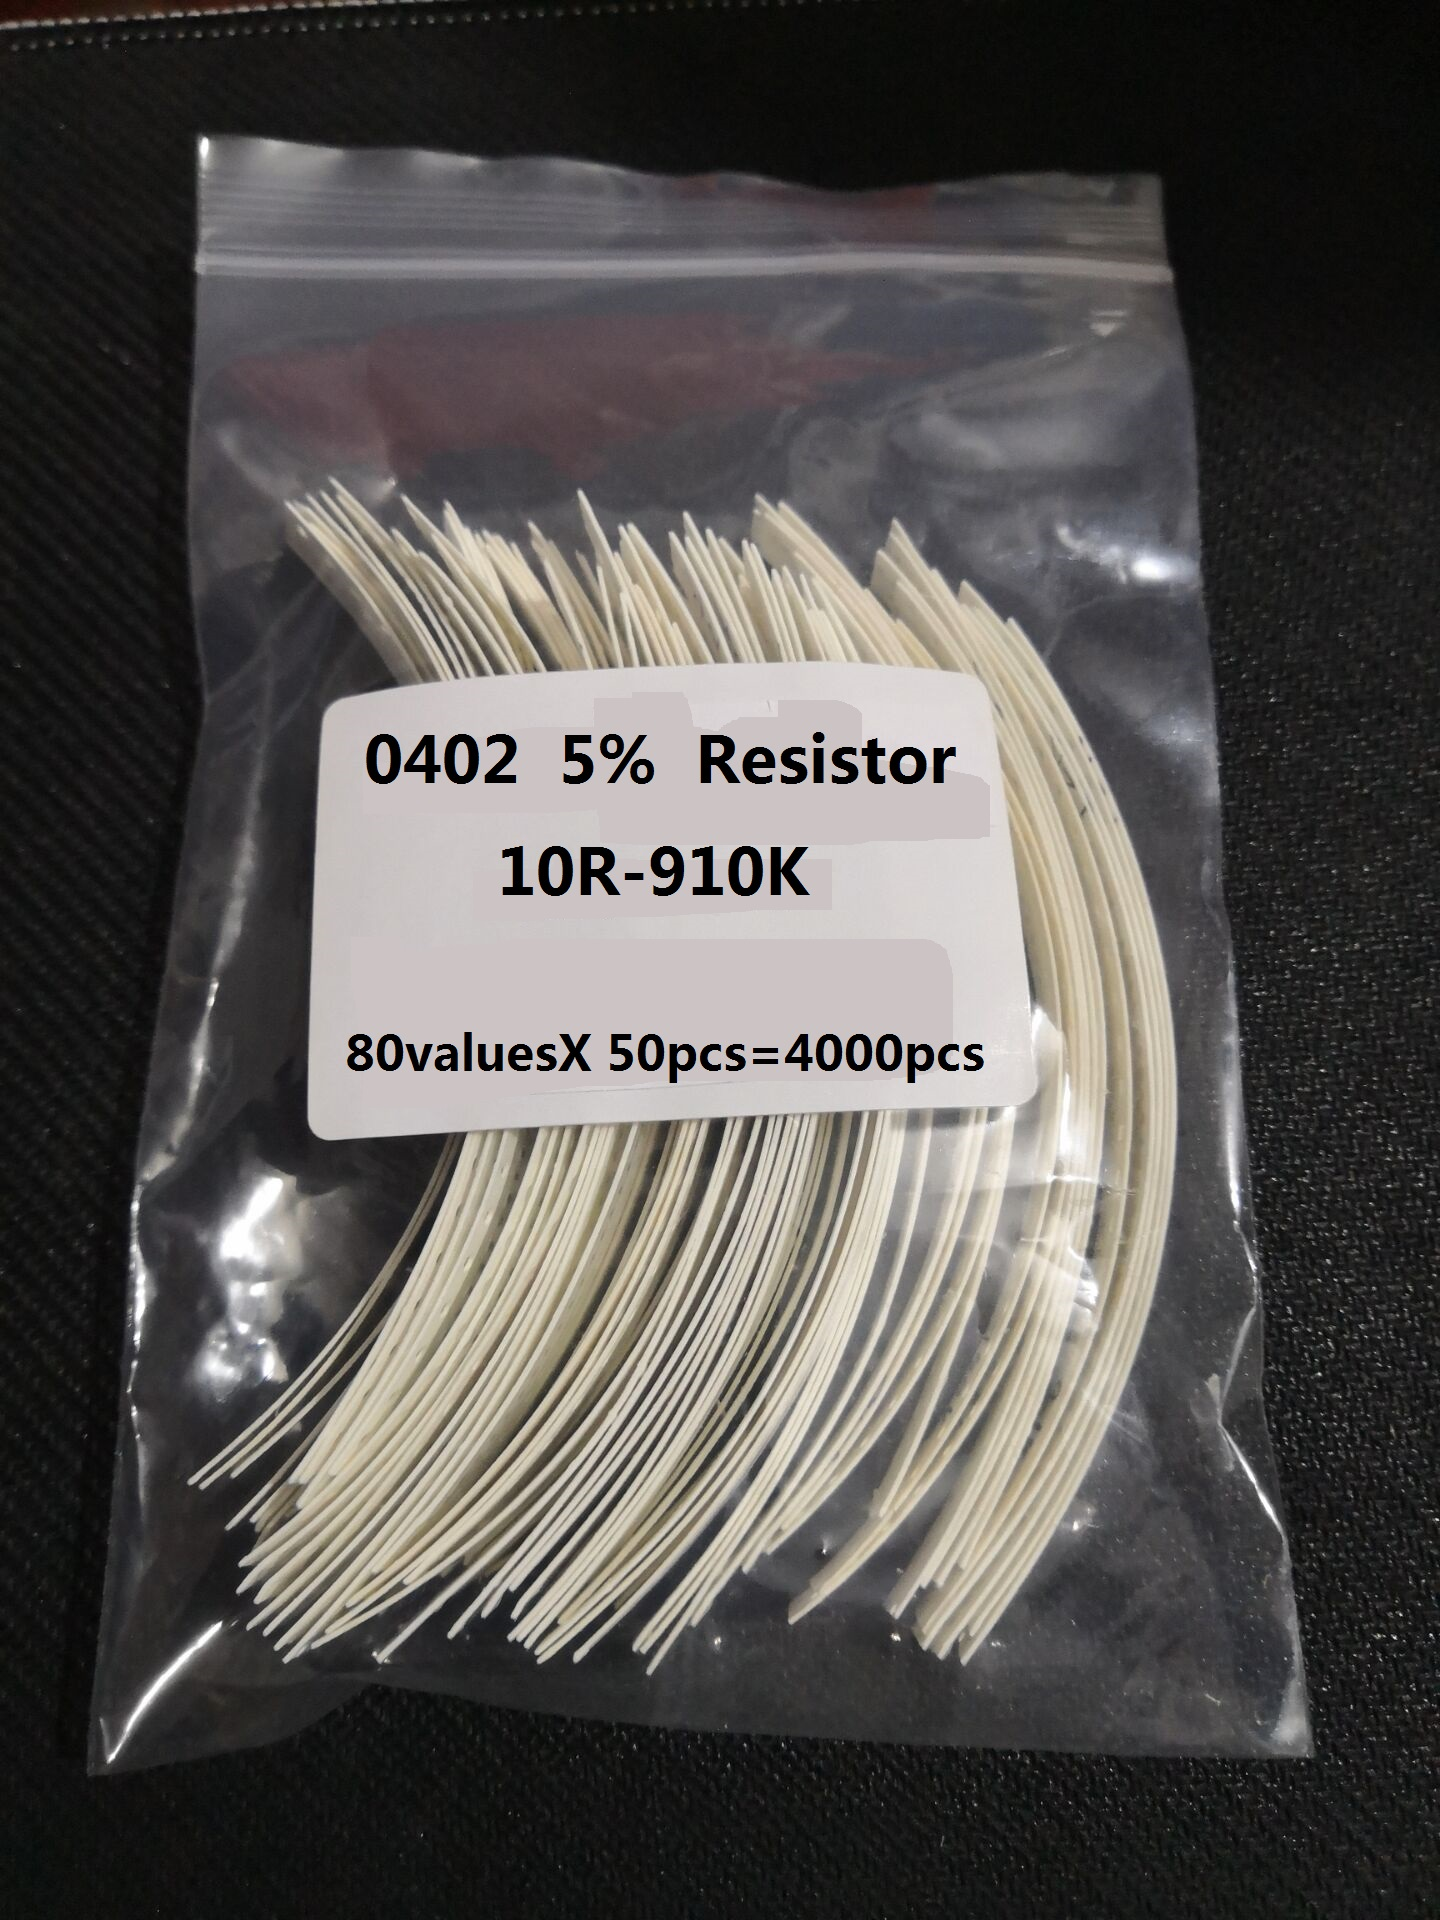 80valuesX 50pcs=4000pcs 0402 <font><b>Resistor</b></font> Kit 10ohm-1M ohm 5% Assorted Sample Kit 1K 2.2k <font><b>10K</b></font> 200K 4.7K 910k 10R 100R 330R 560R Ohm image